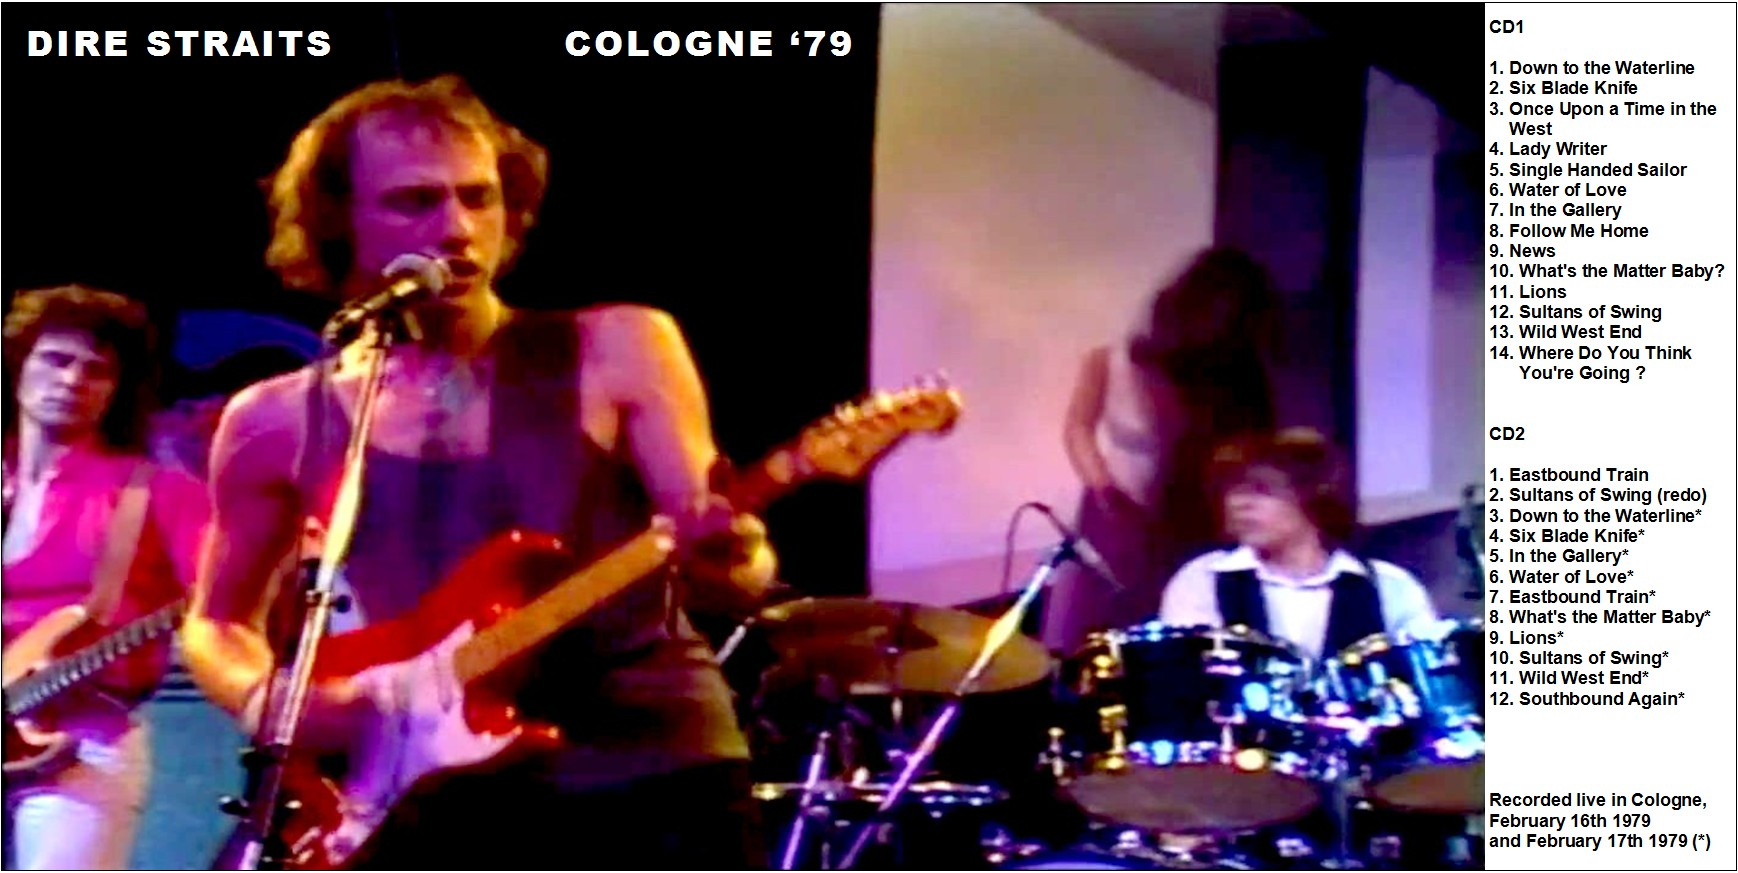 DIRE STRAITS – COLOGNE '79 – ACE BOOTLEGS